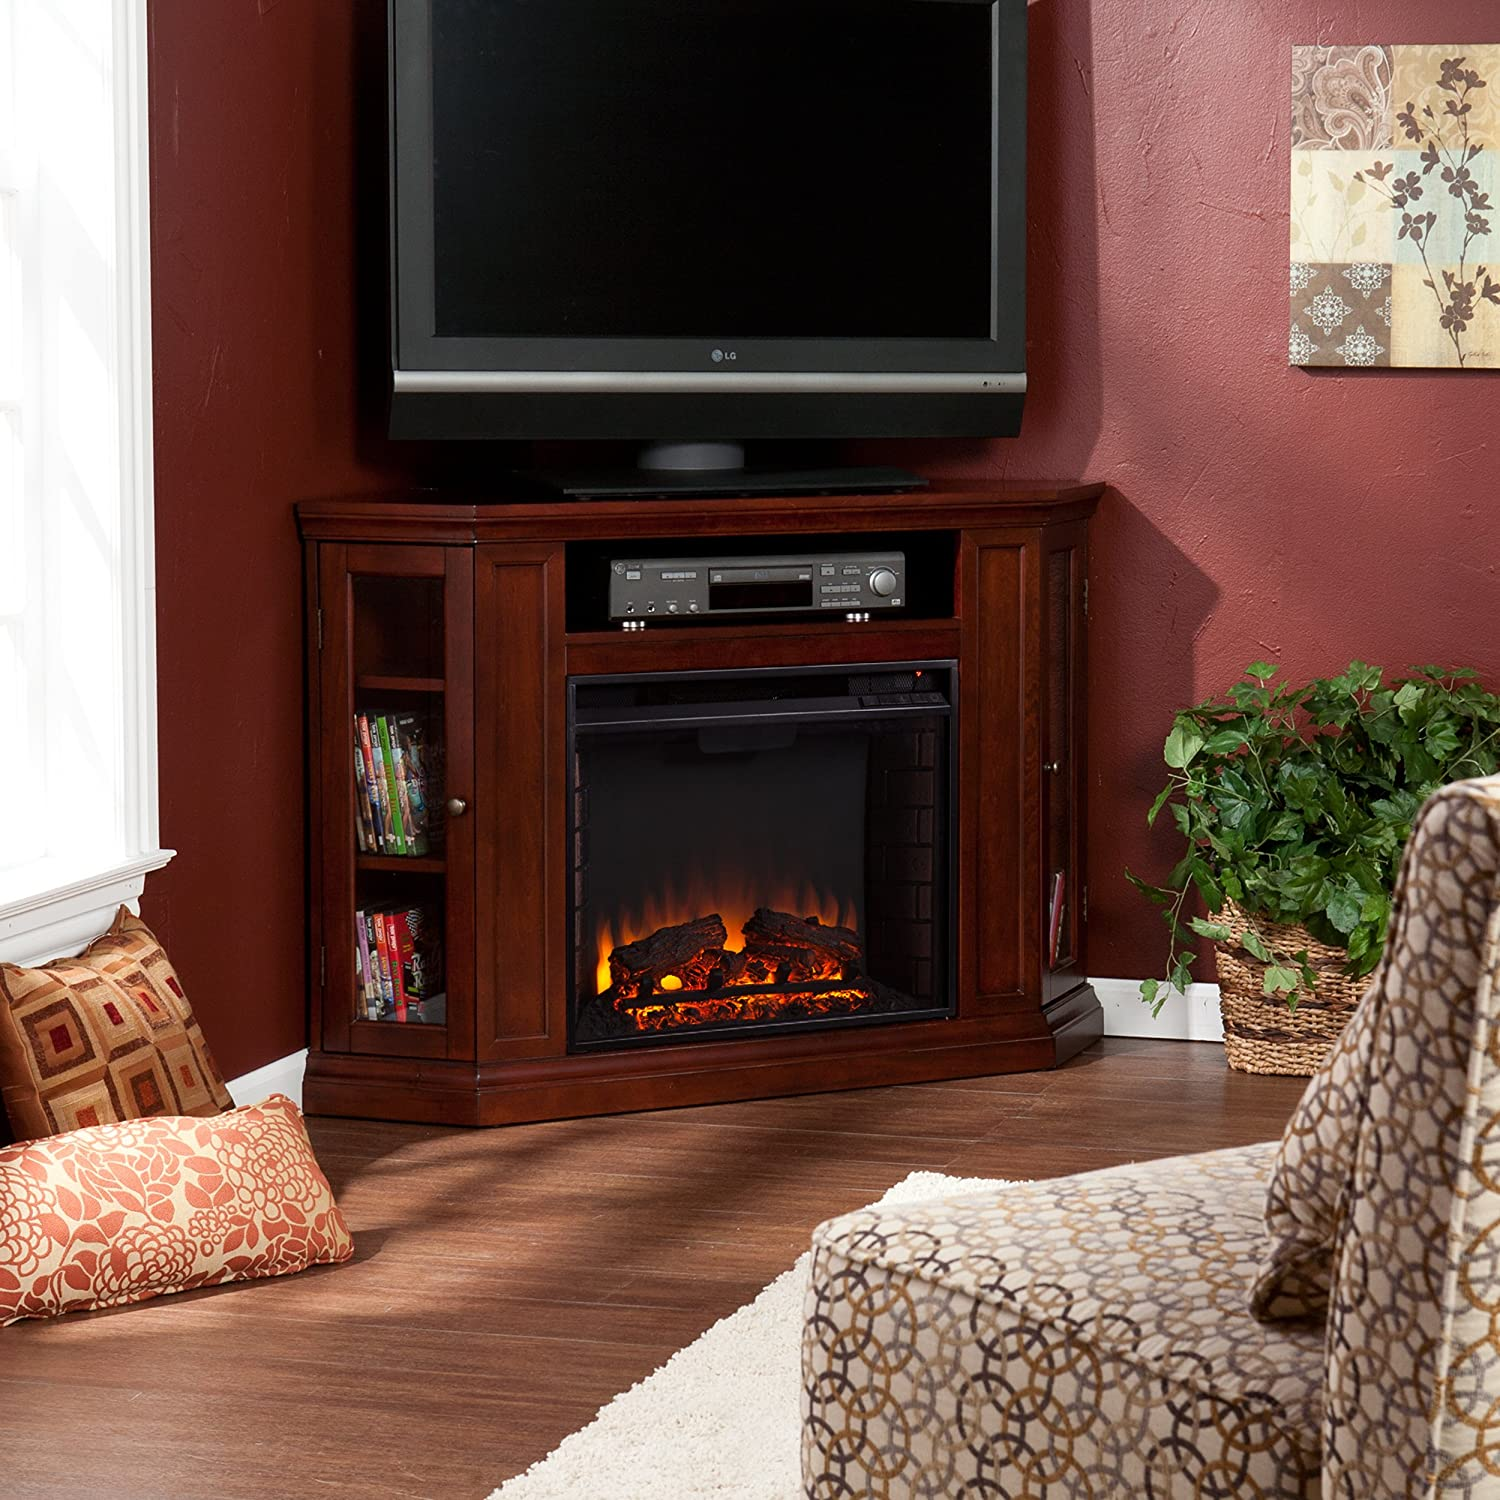 Amazon.com: Claremont Convertible Media Electric Fireplace - Cherry:  Kitchen & Dining - Amazon.com: Claremont Convertible Media Electric Fireplace